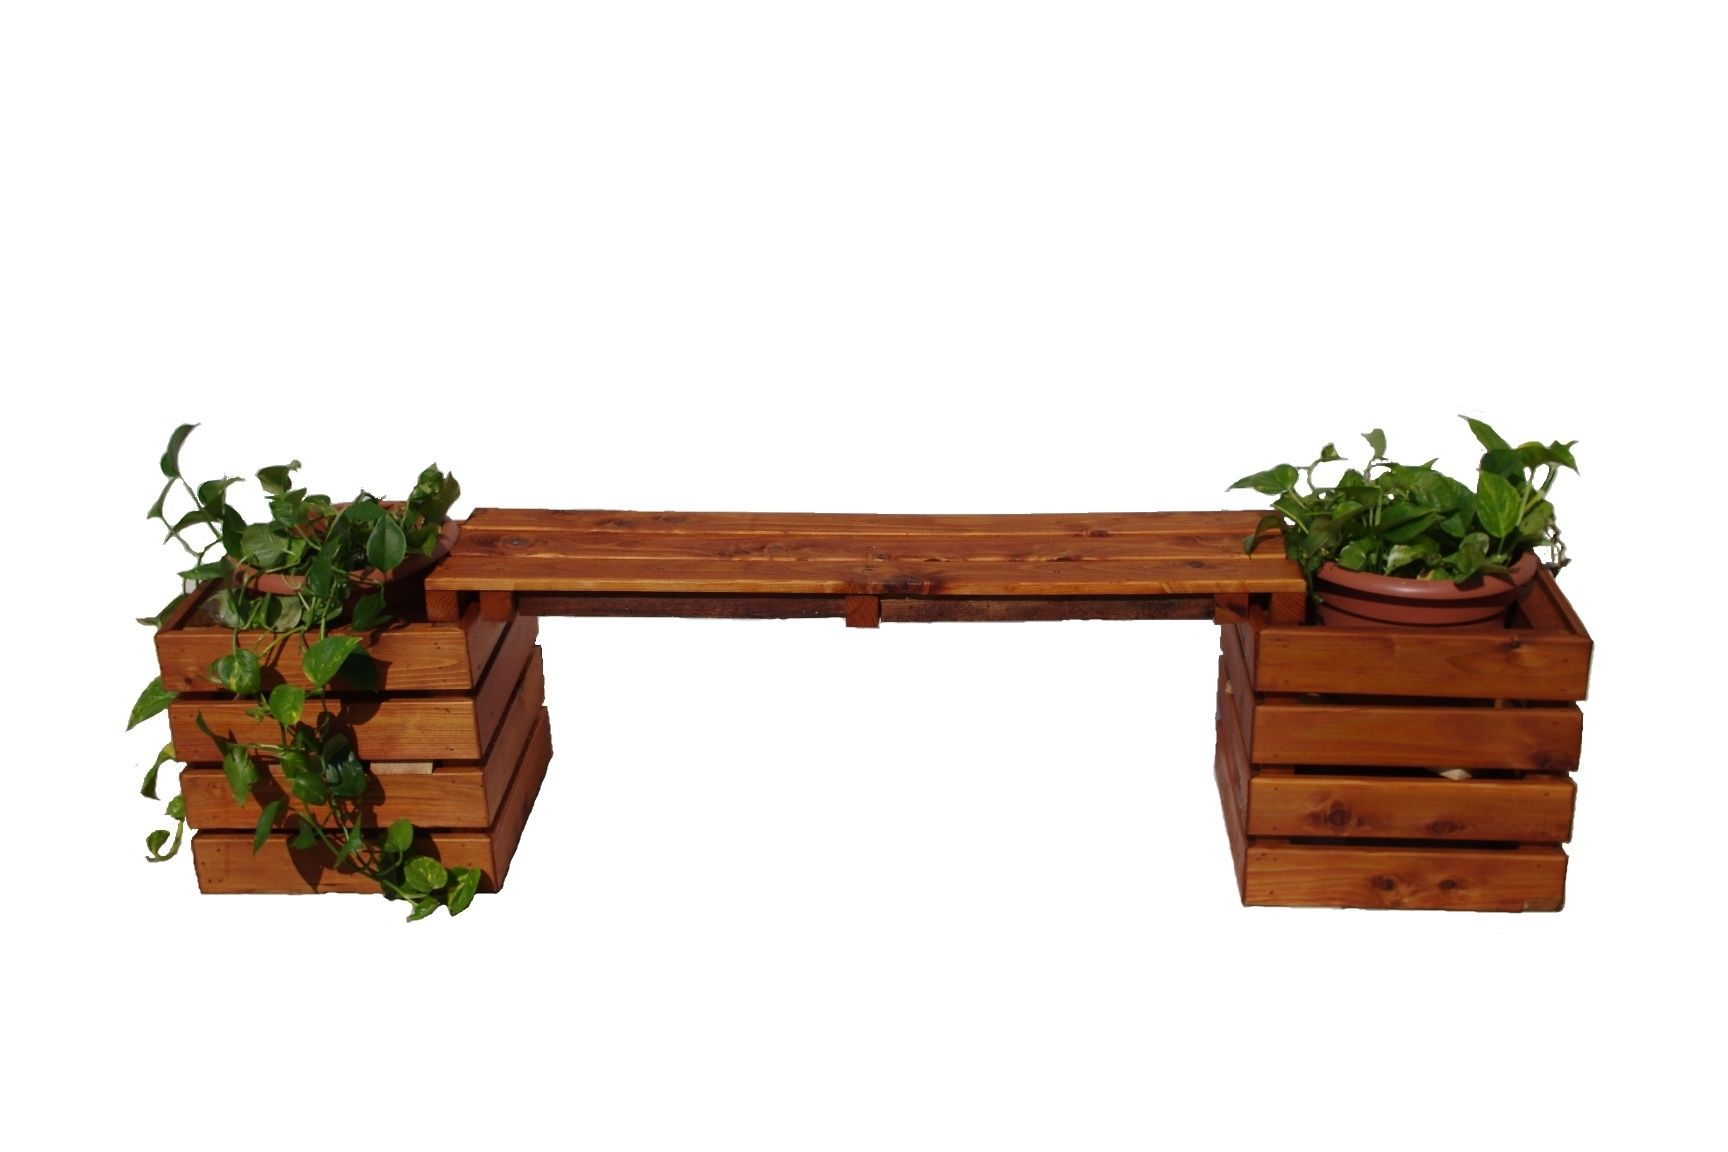 Very Impressive portraiture of home decor outdoor outdoor furniture benches small planter bench with #7D3A1A color and 1728x1152 pixels